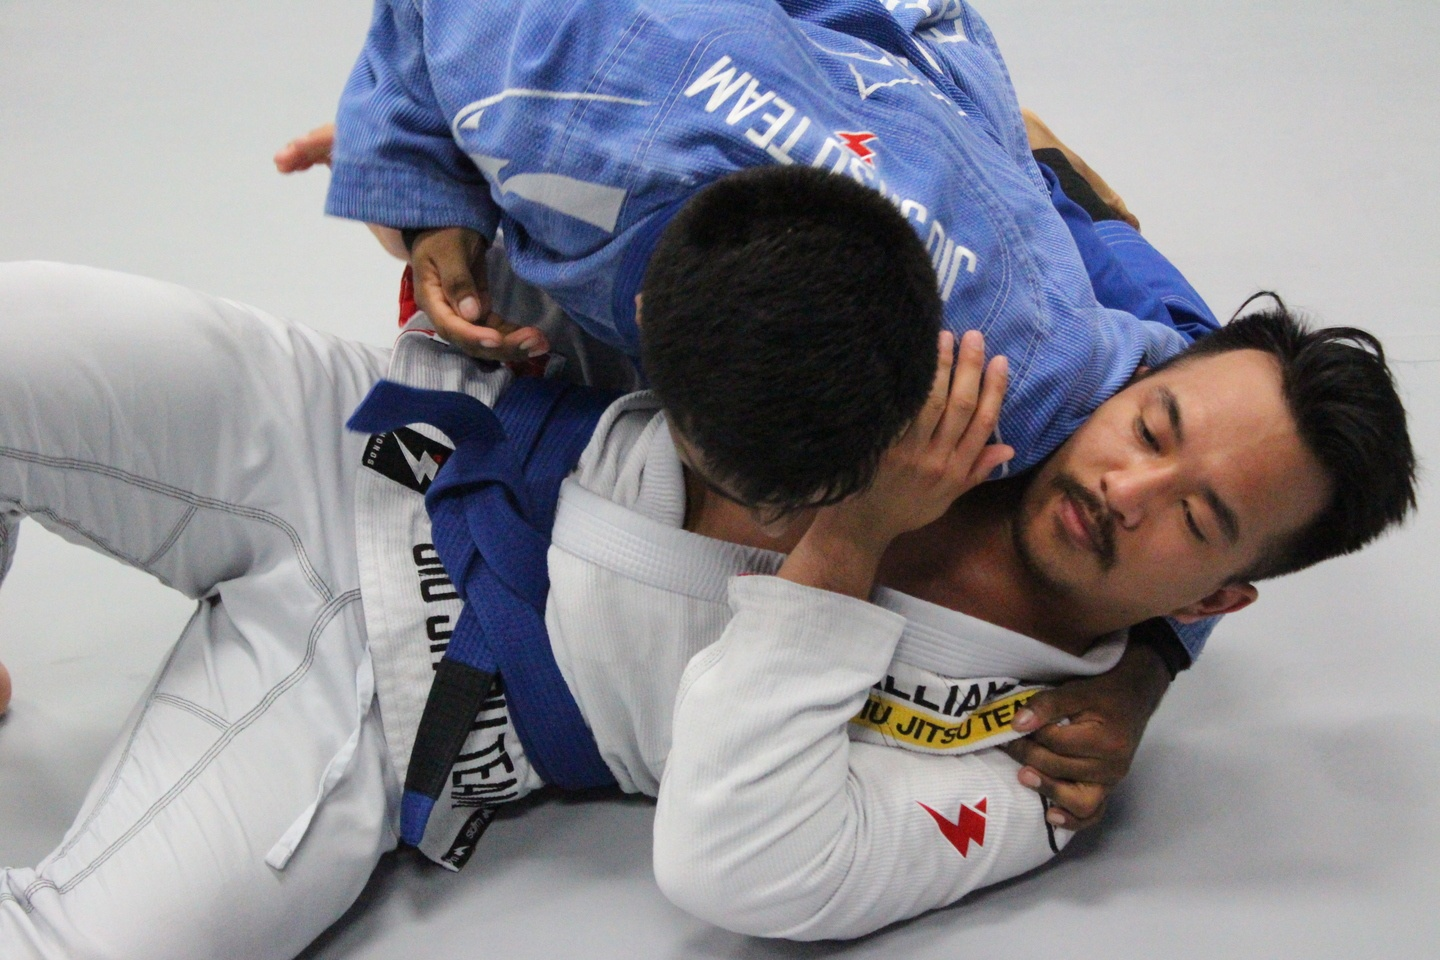 Houston Brazilian Jiu-Jitsu Program